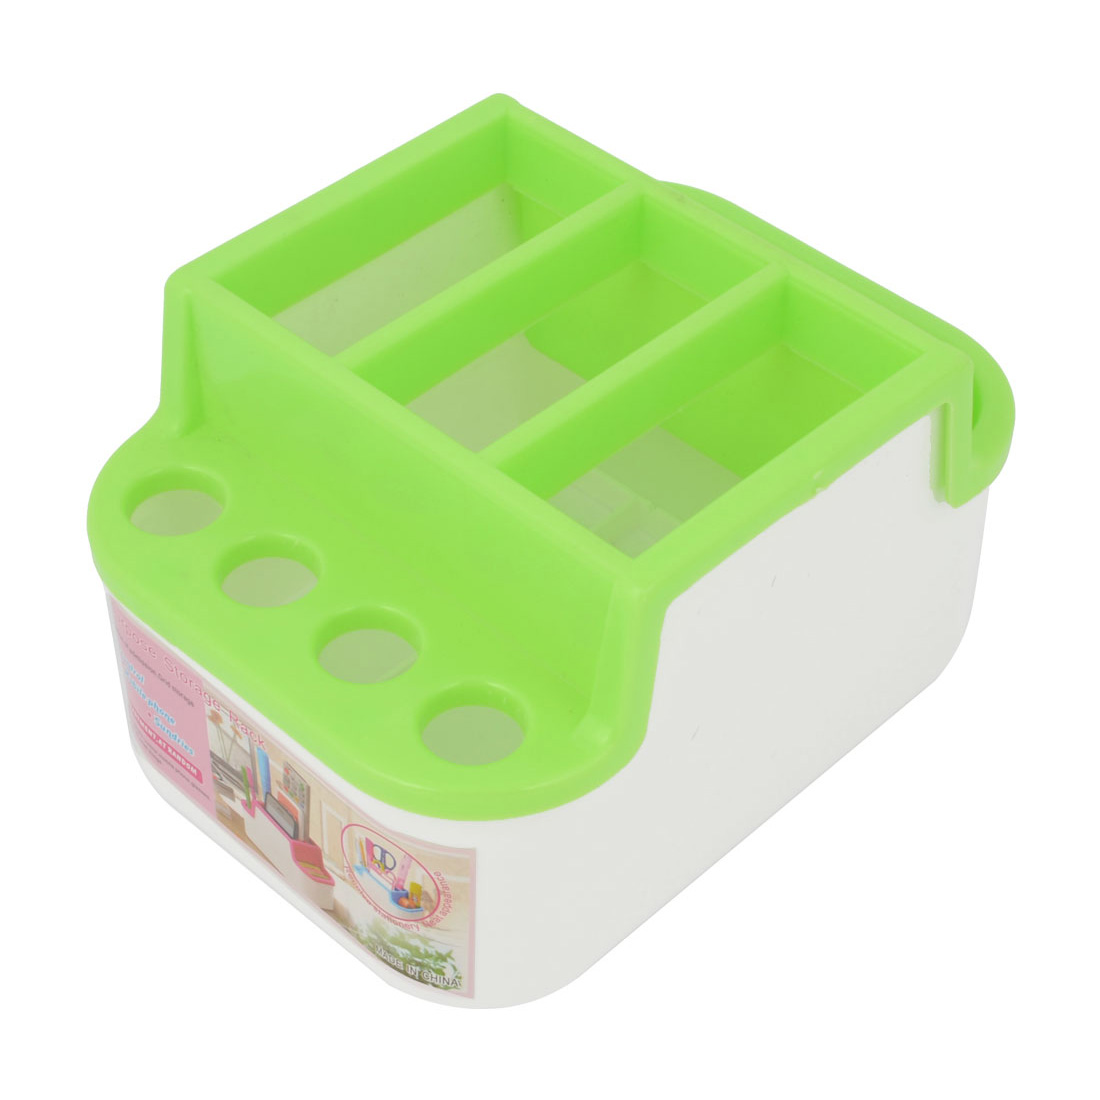 Household Green White Multi Purpose Pens Glasses Holder Mobile Phone Remote Control Gadgets Storage Box